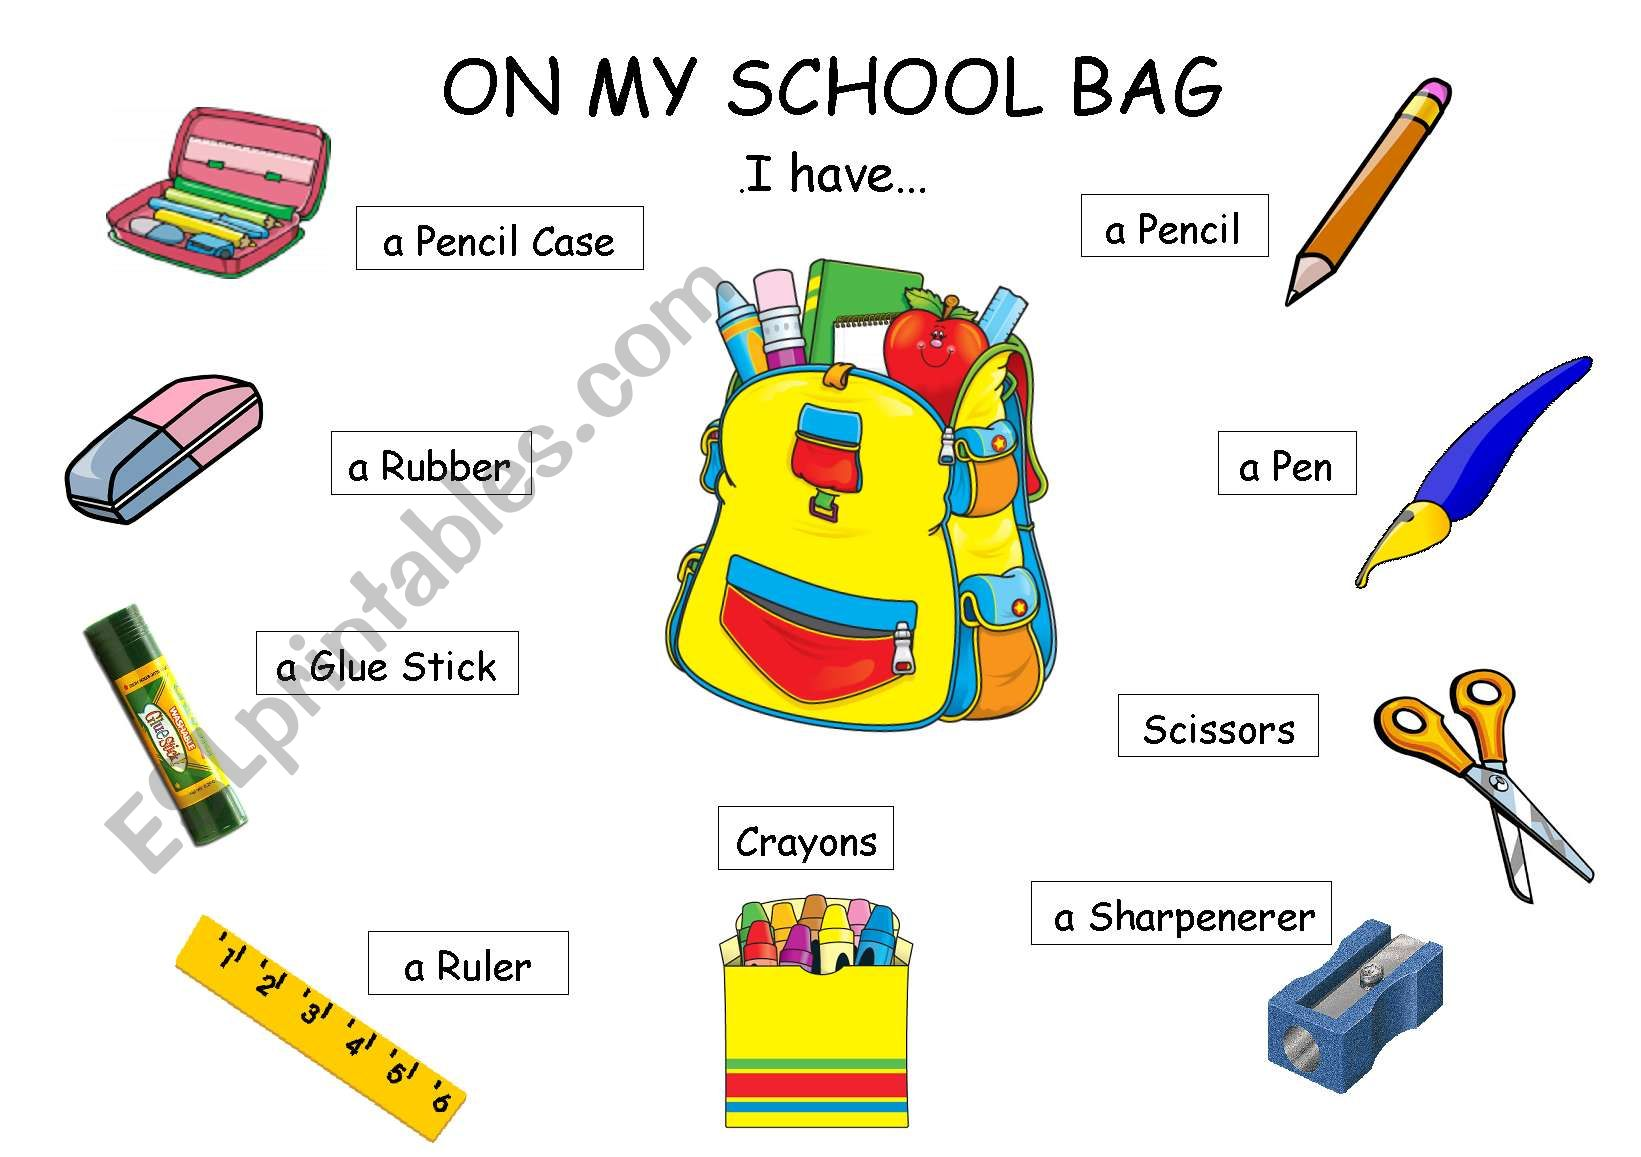 The School Bag